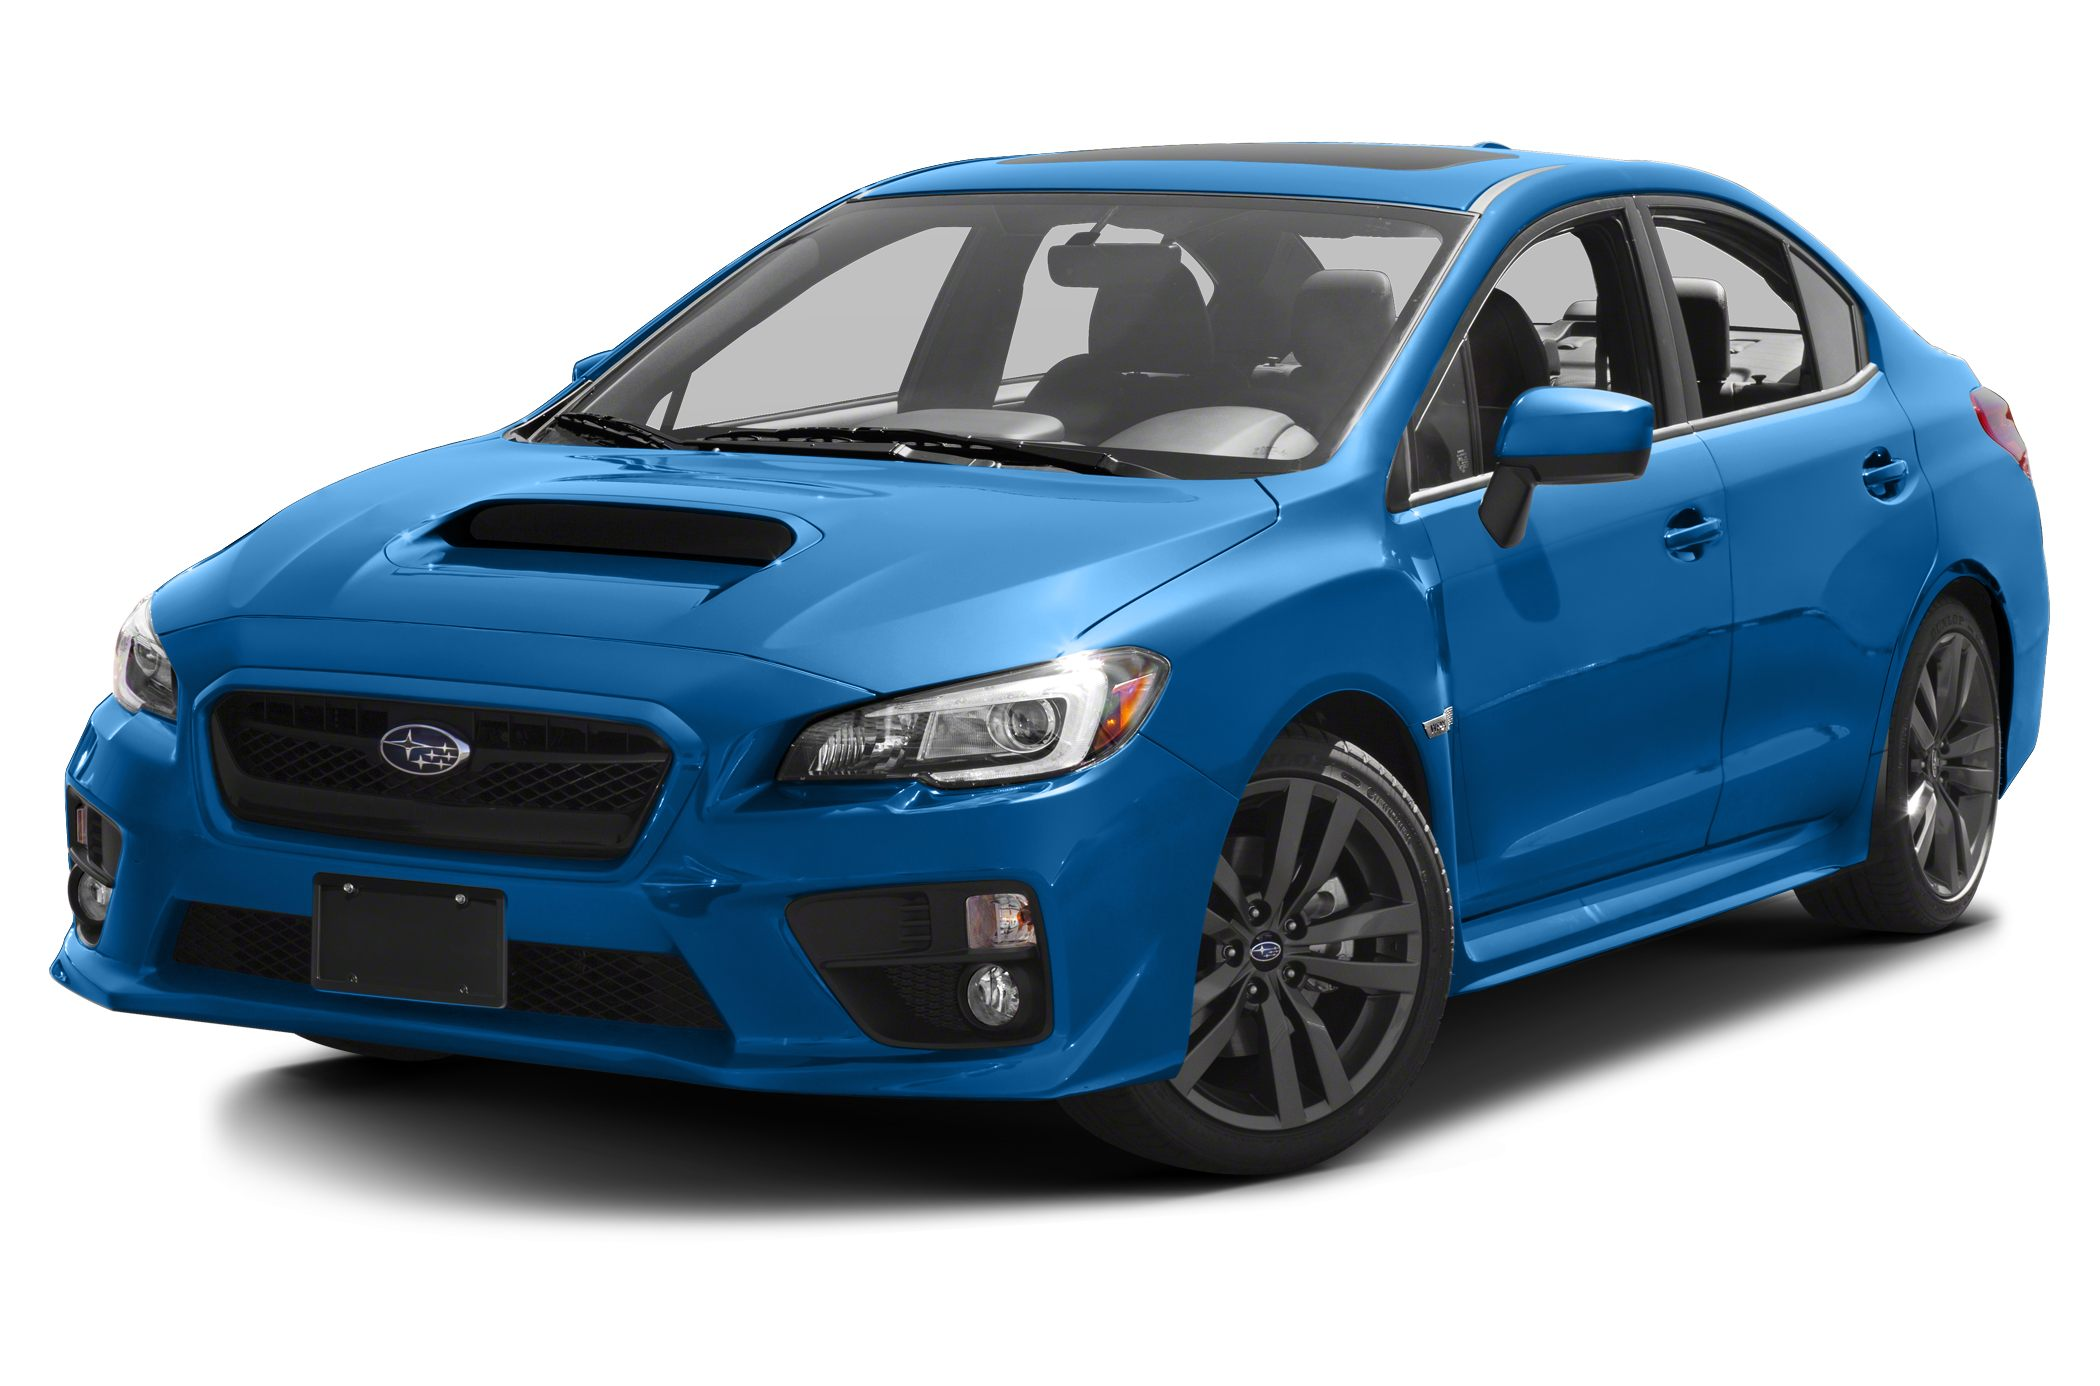 2016 Subaru WRX Premium Vehicle Options Air Conditioning Interval Wipers Steering Wheel Mounted Co